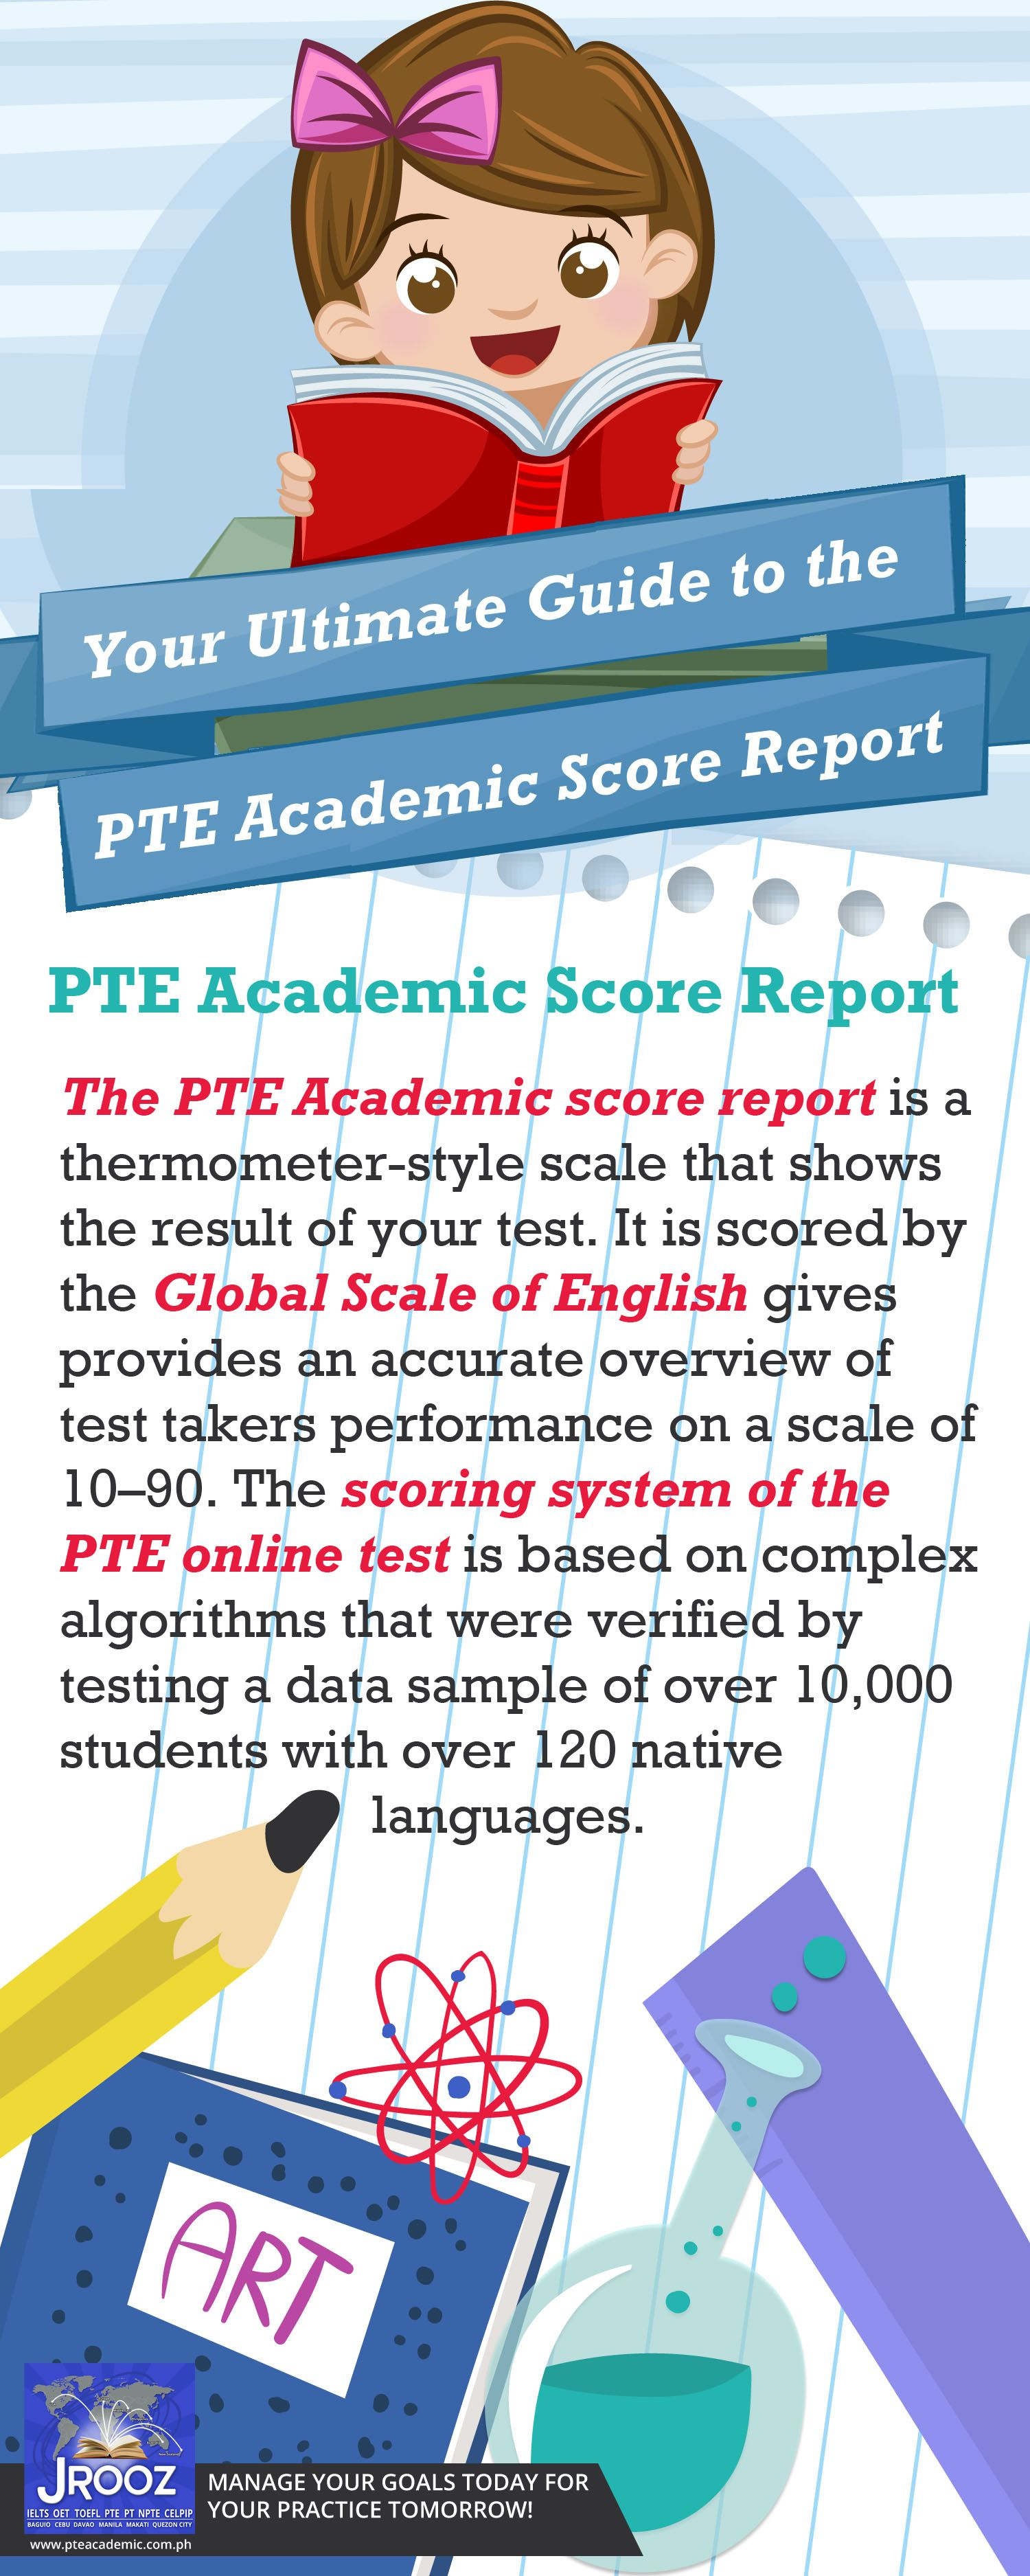 The scoring system of the PTE online test is based on